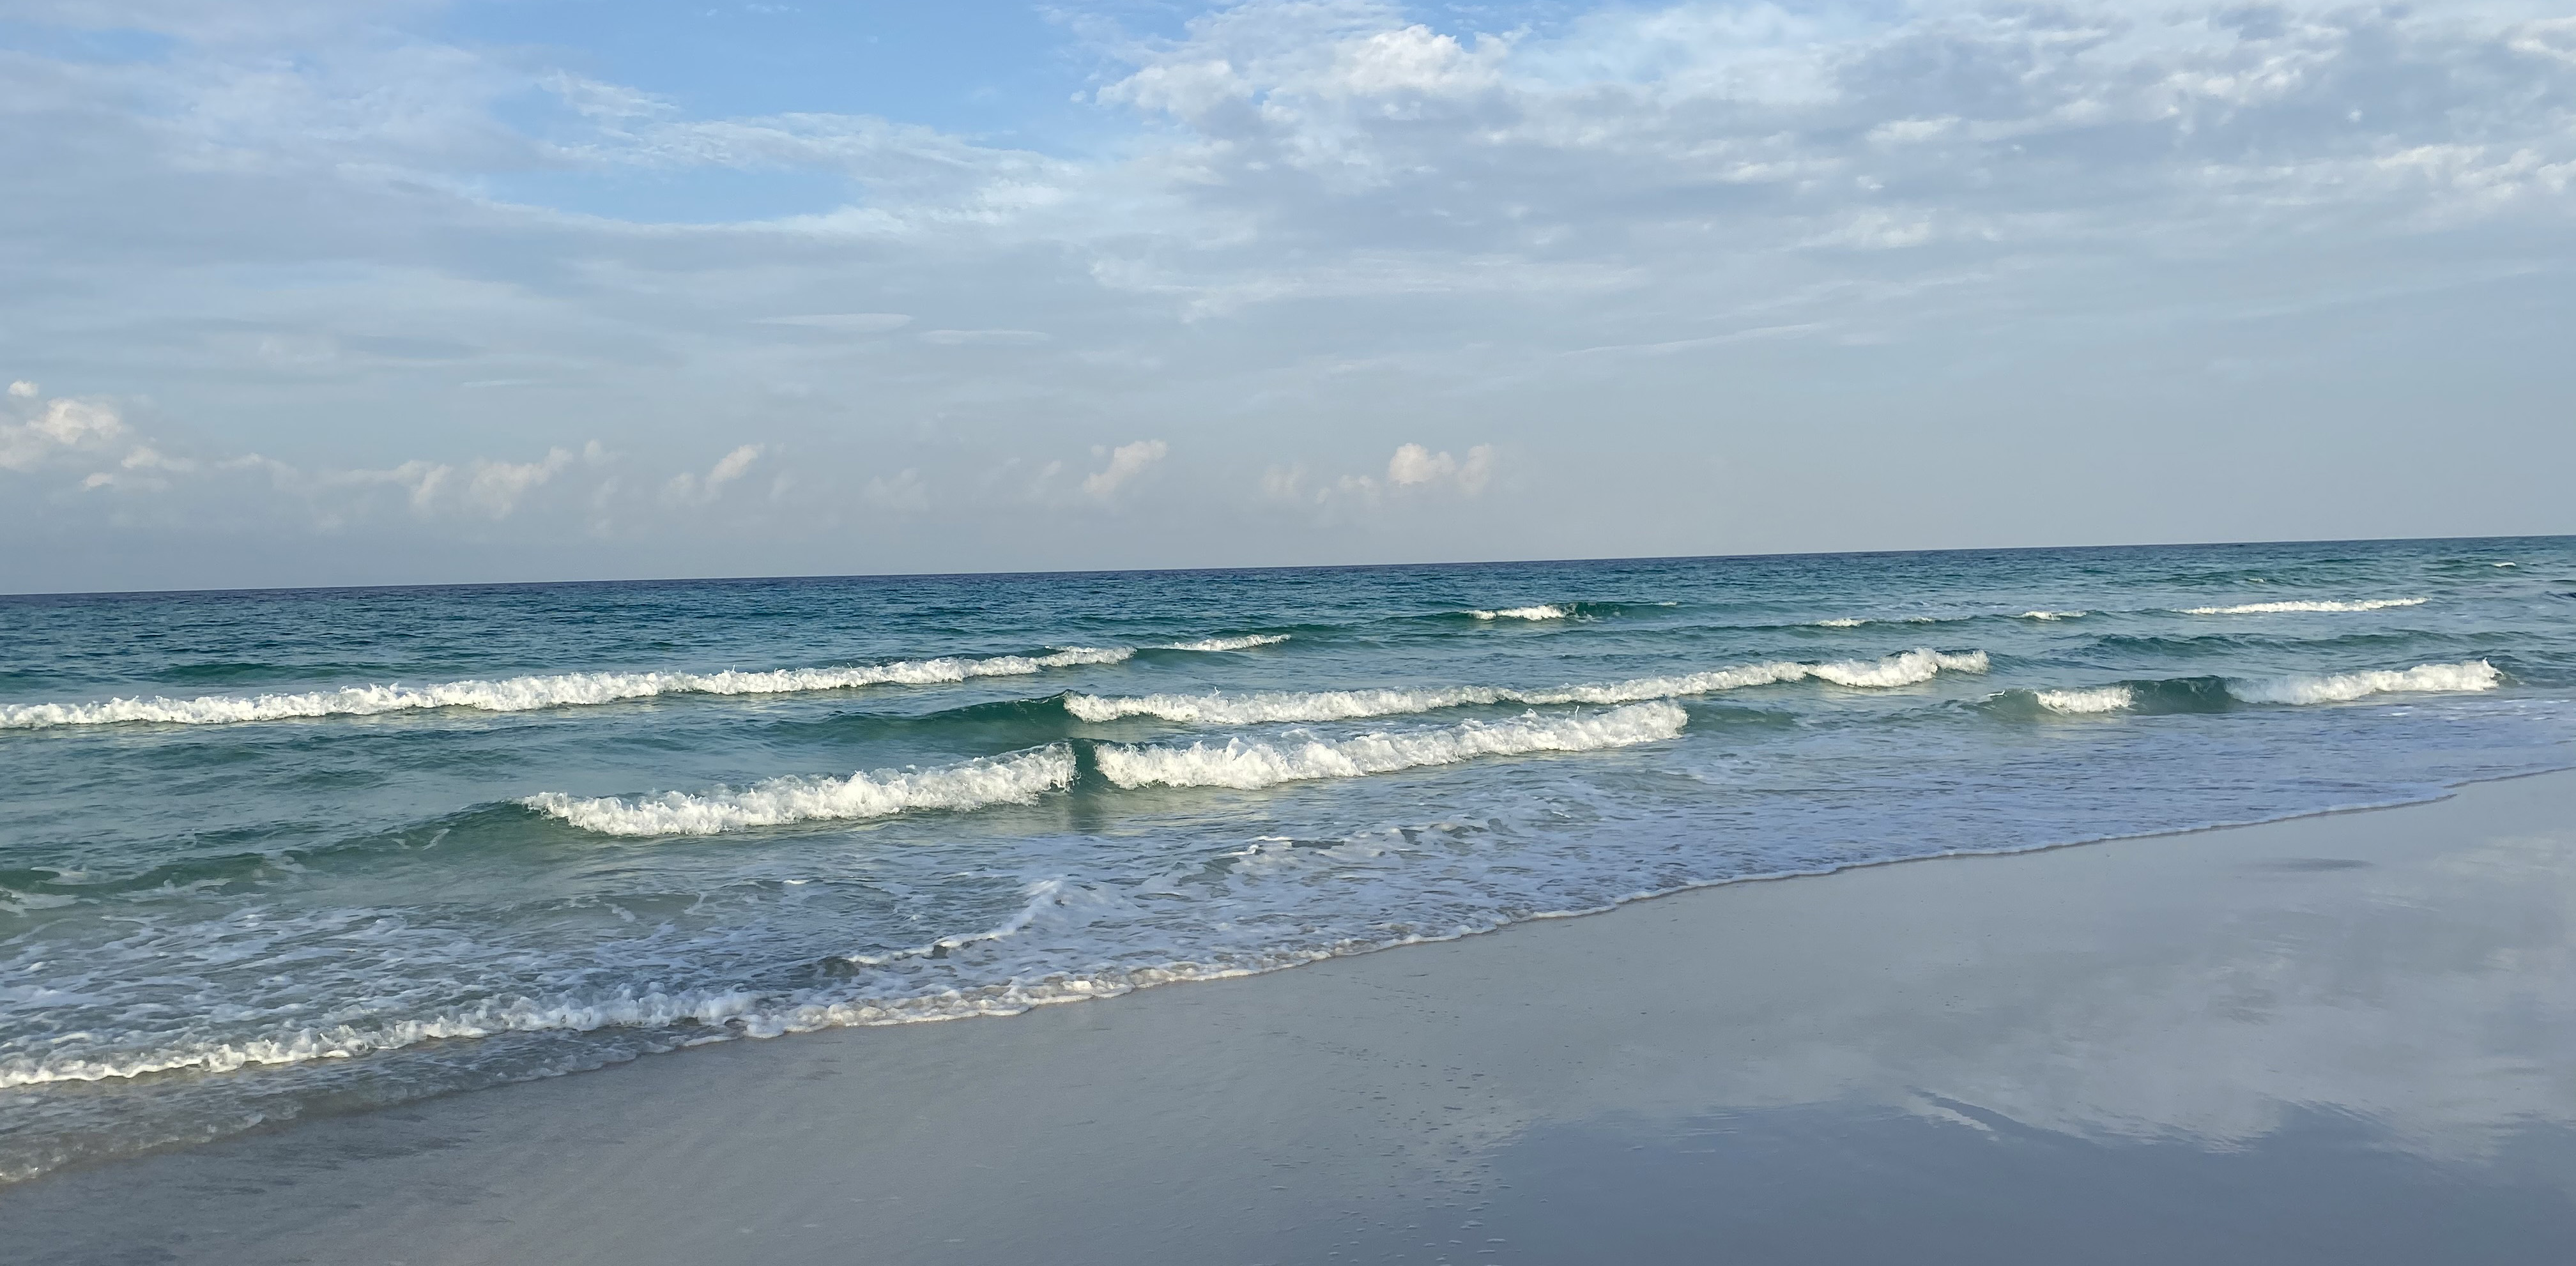 waves come to shore at Santa Rosa Beach, Florida